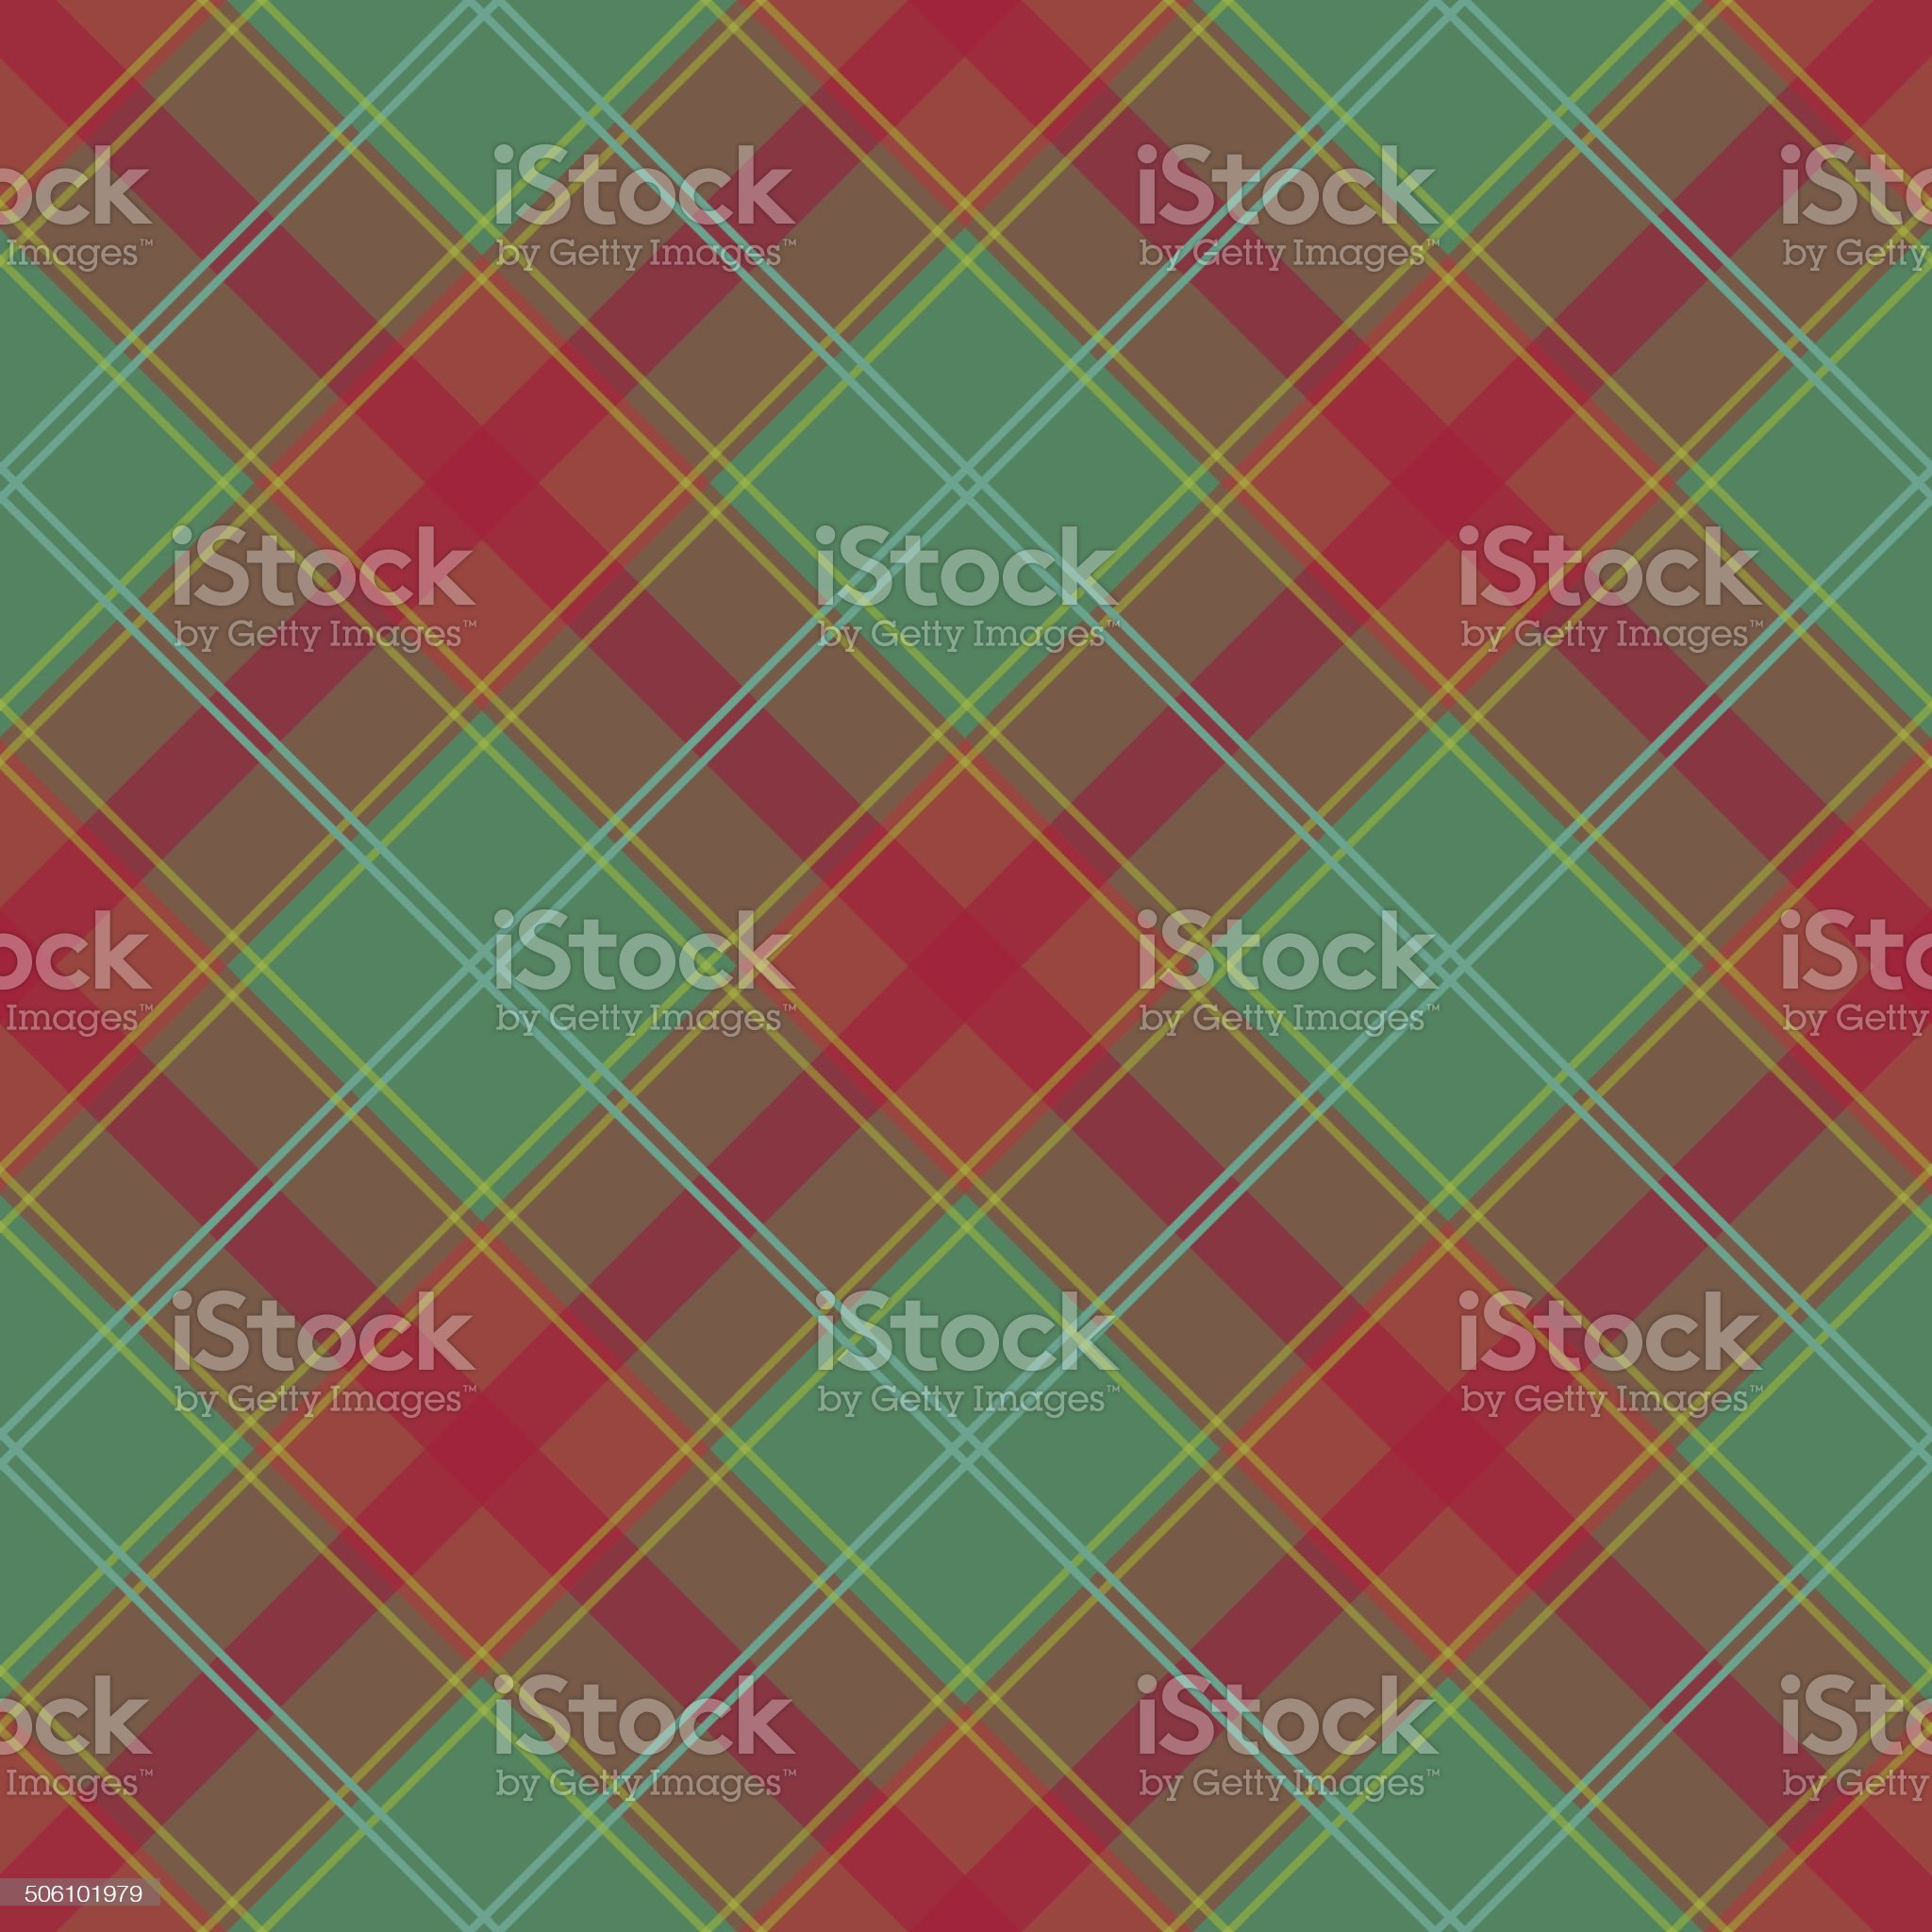 Plaid Fabric. Tartan. Checkered vector background. Abstract Seamless pattern. royalty-free stock vector art